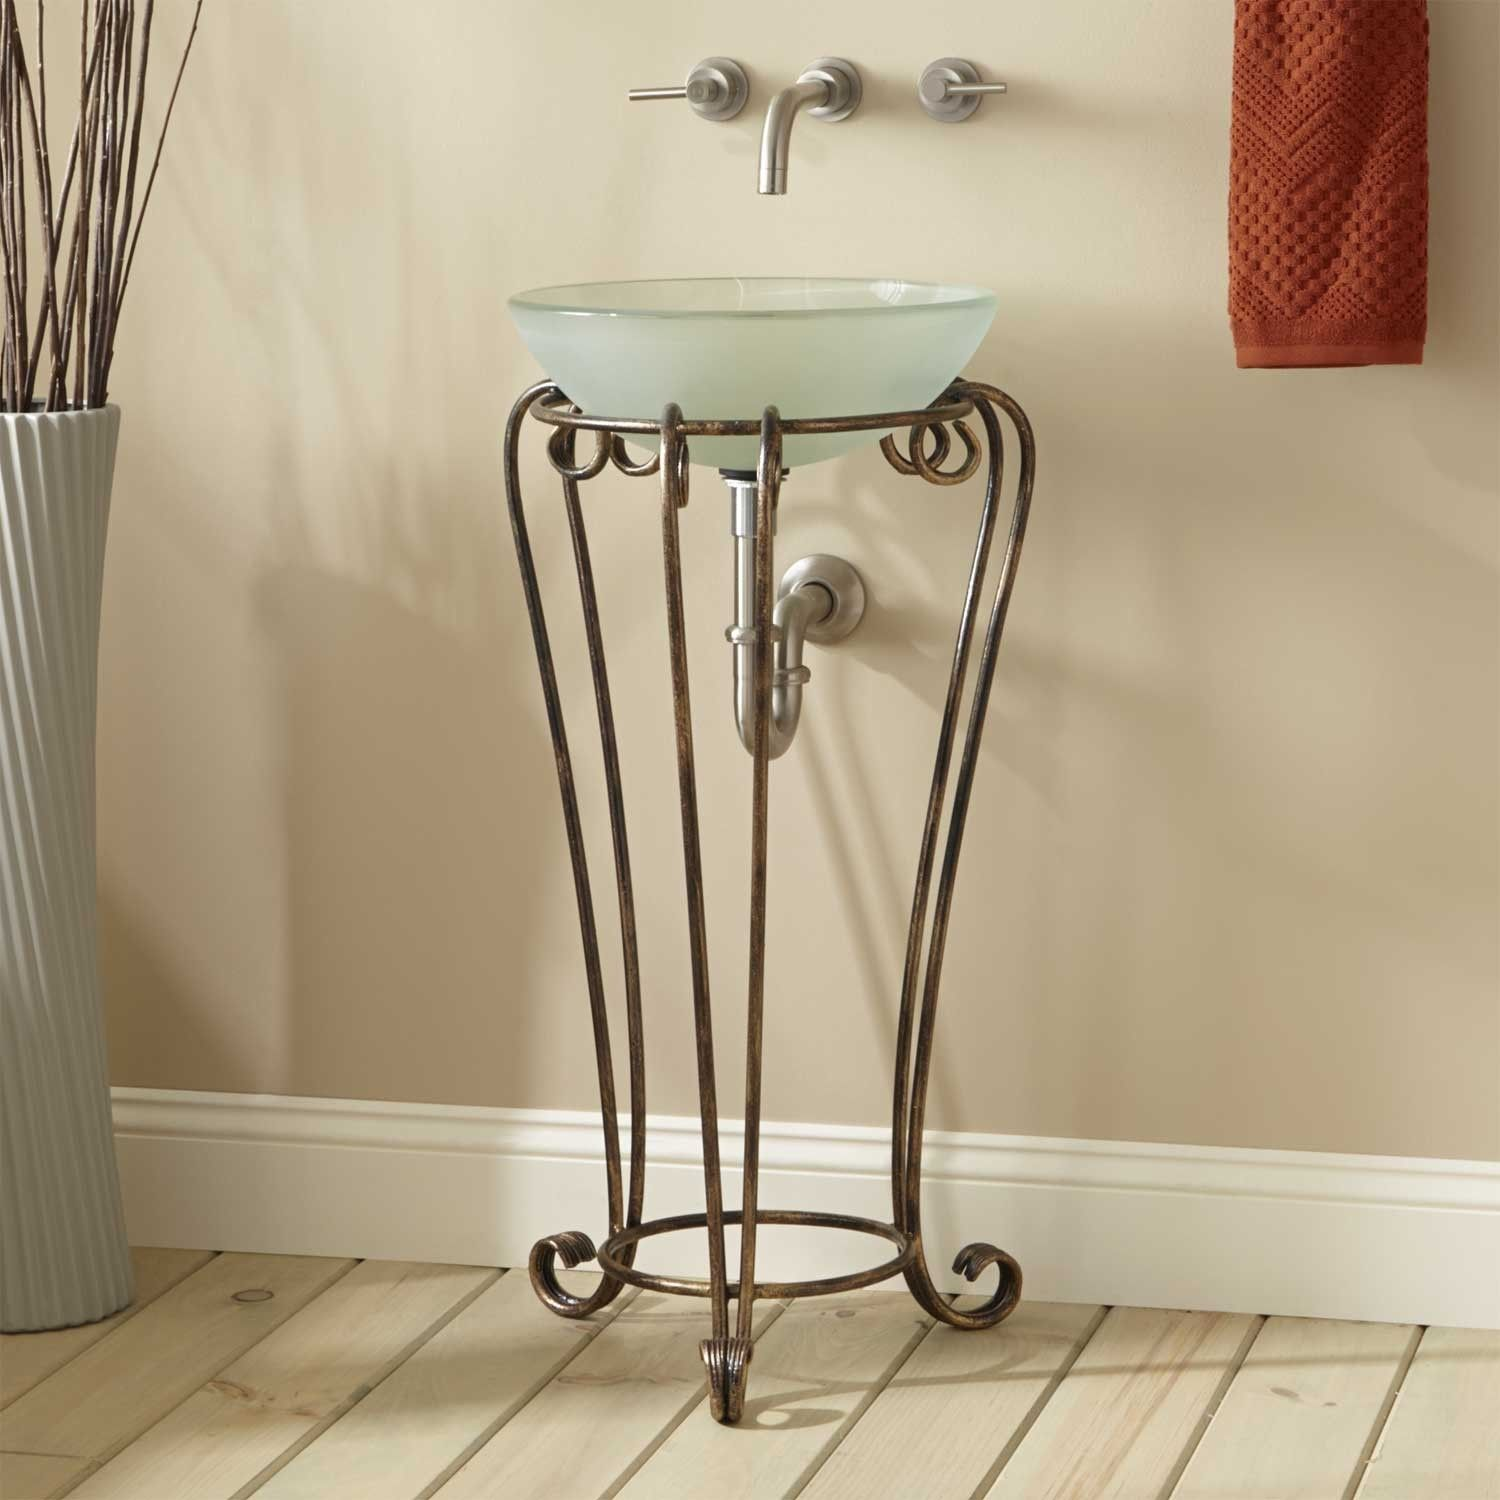 Delightful Altan Wrought Iron Vessel Sink Stand